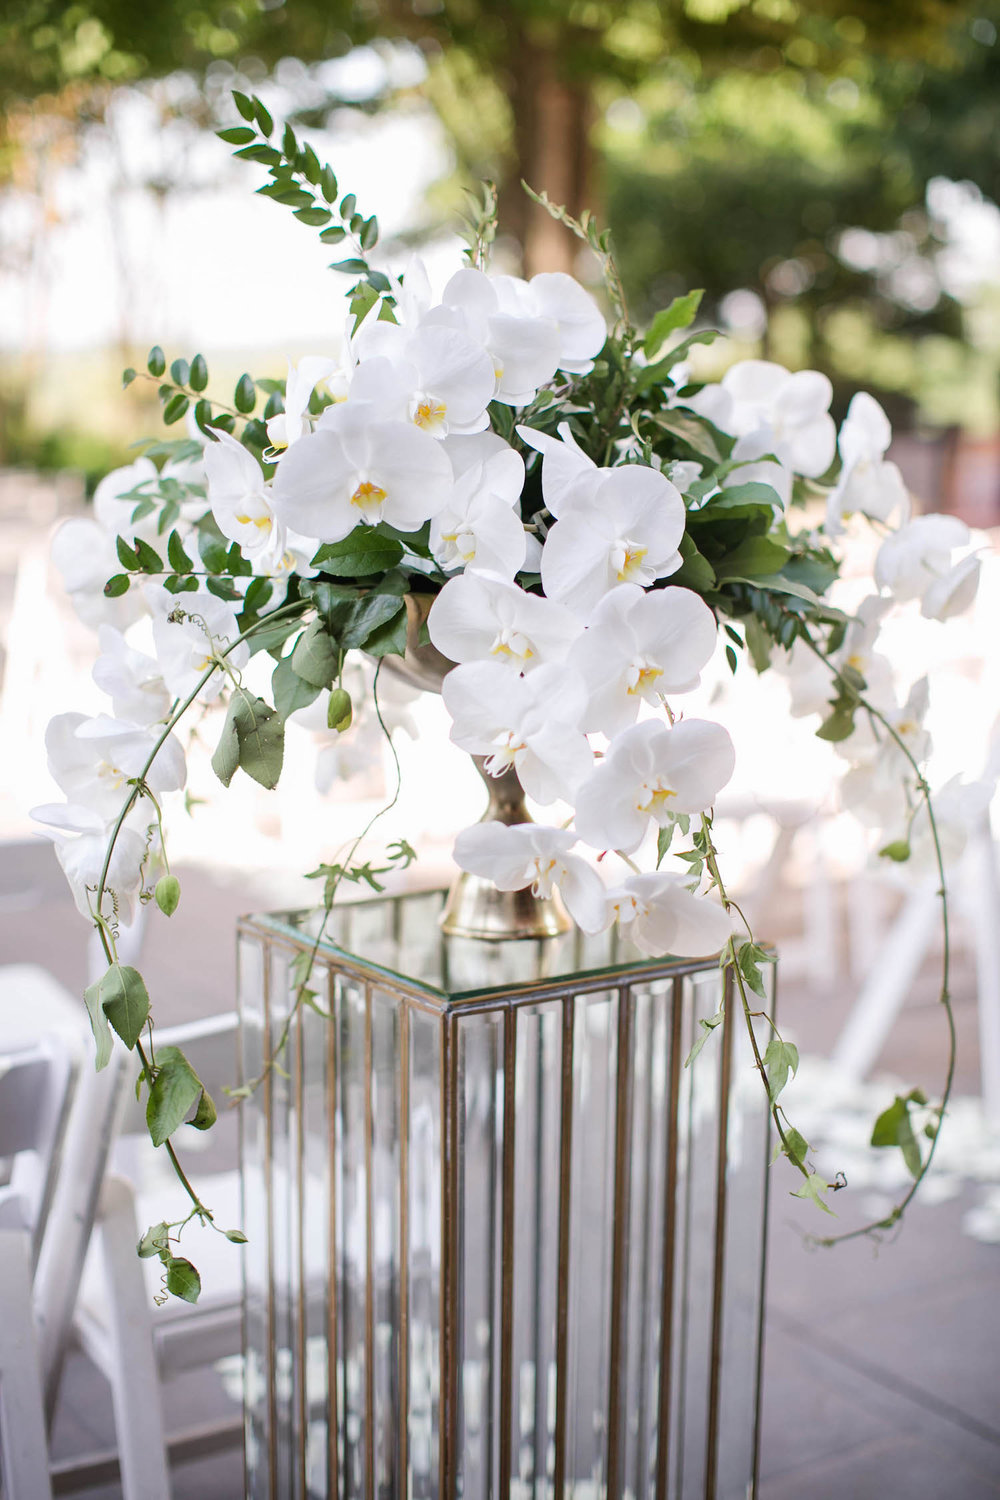 J. Morris Flowers ceremony decor. Photography by Kristen Gardner Photography.